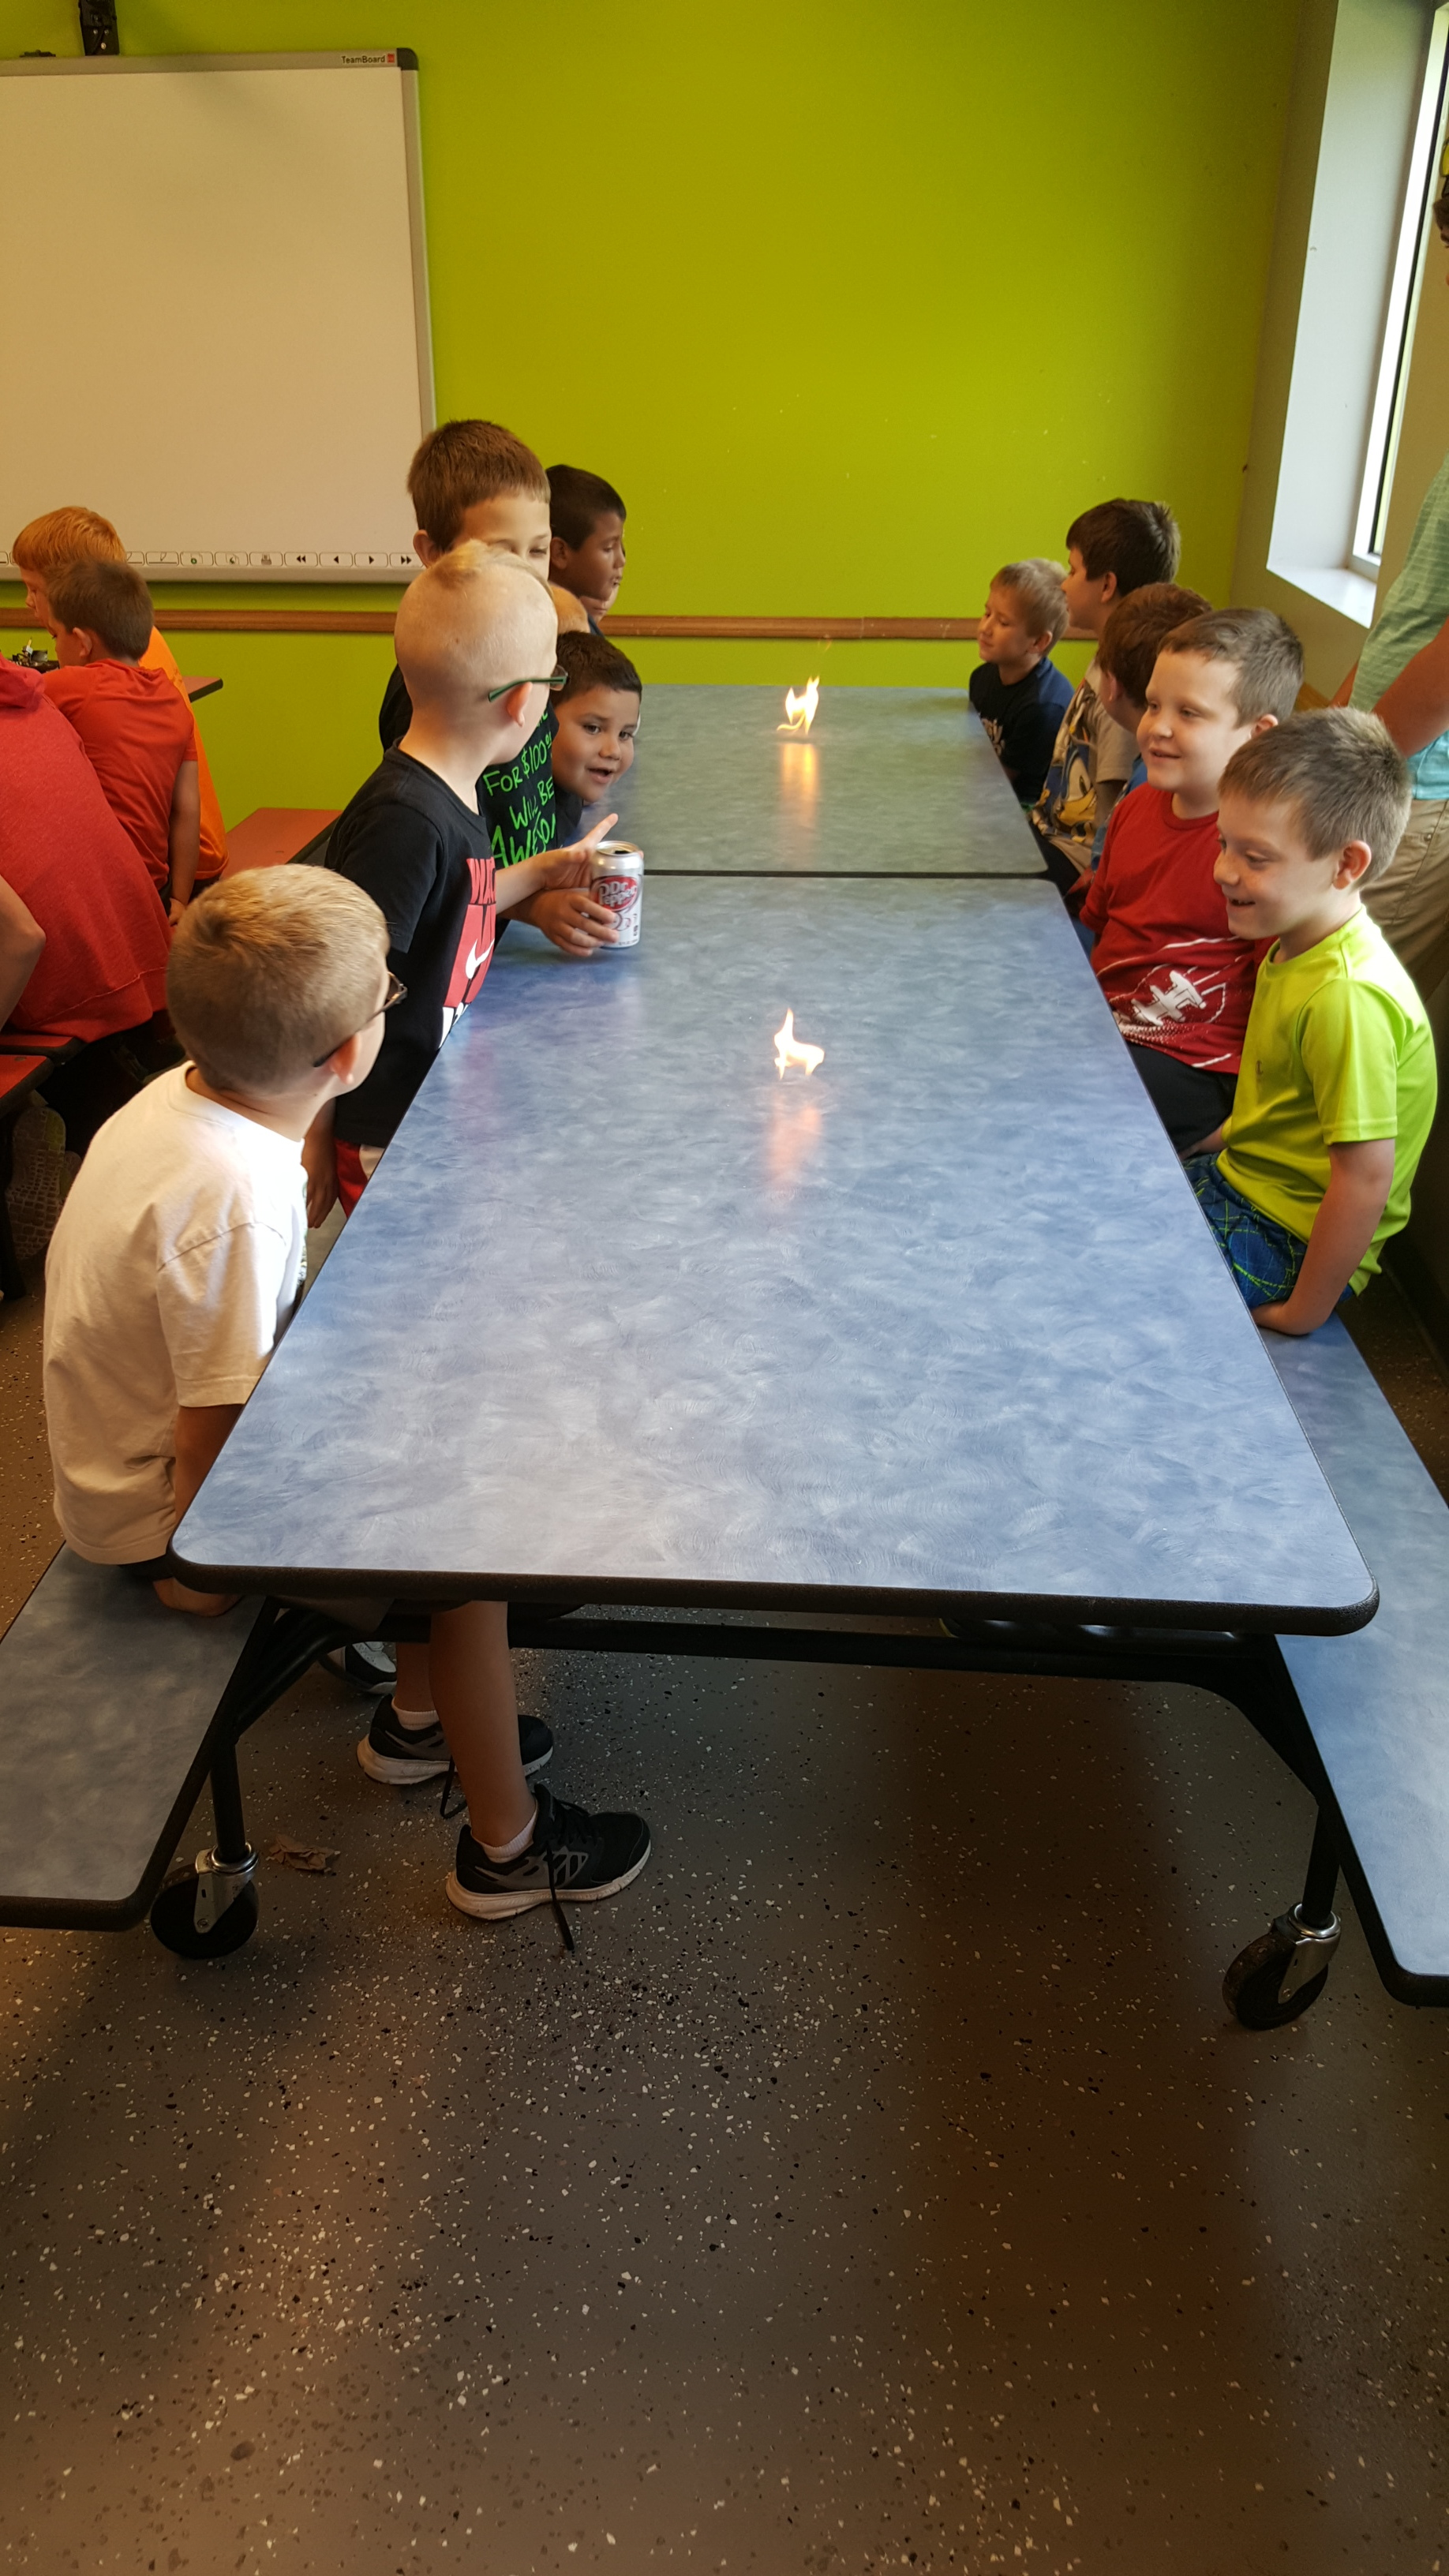 The table's on fire! Is nobody worried here? The kids seem to think it's pretty cool!